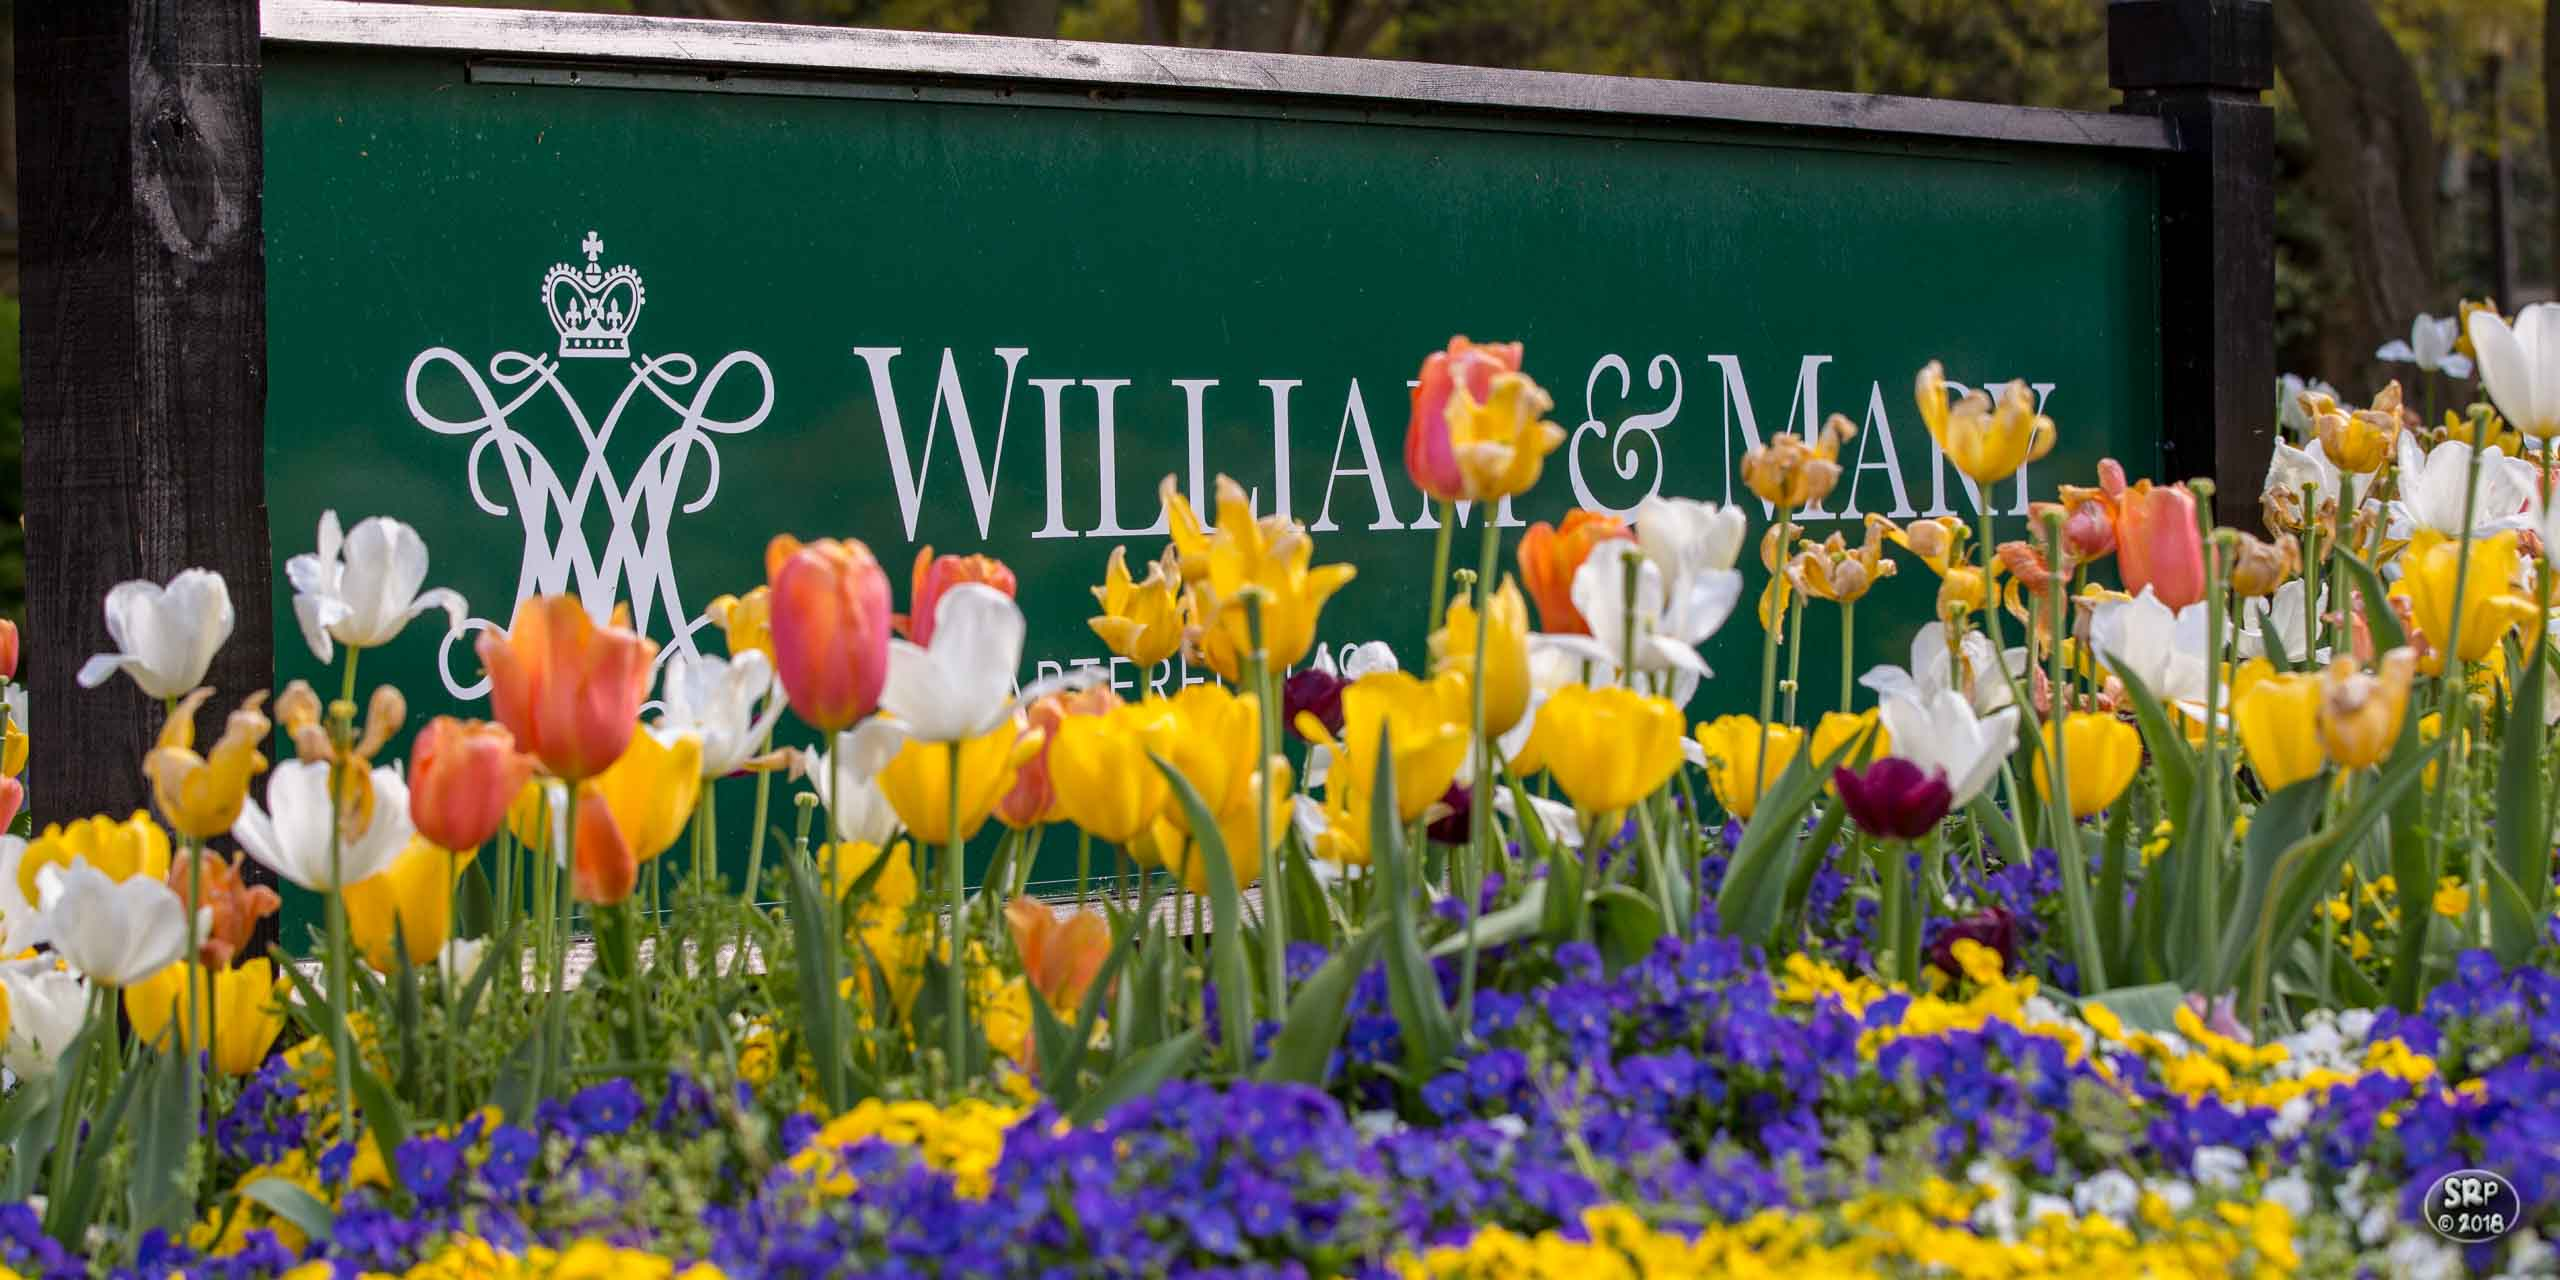 180426-wm-william-and-mary-sign-with-flowers-0005-web-ready-home